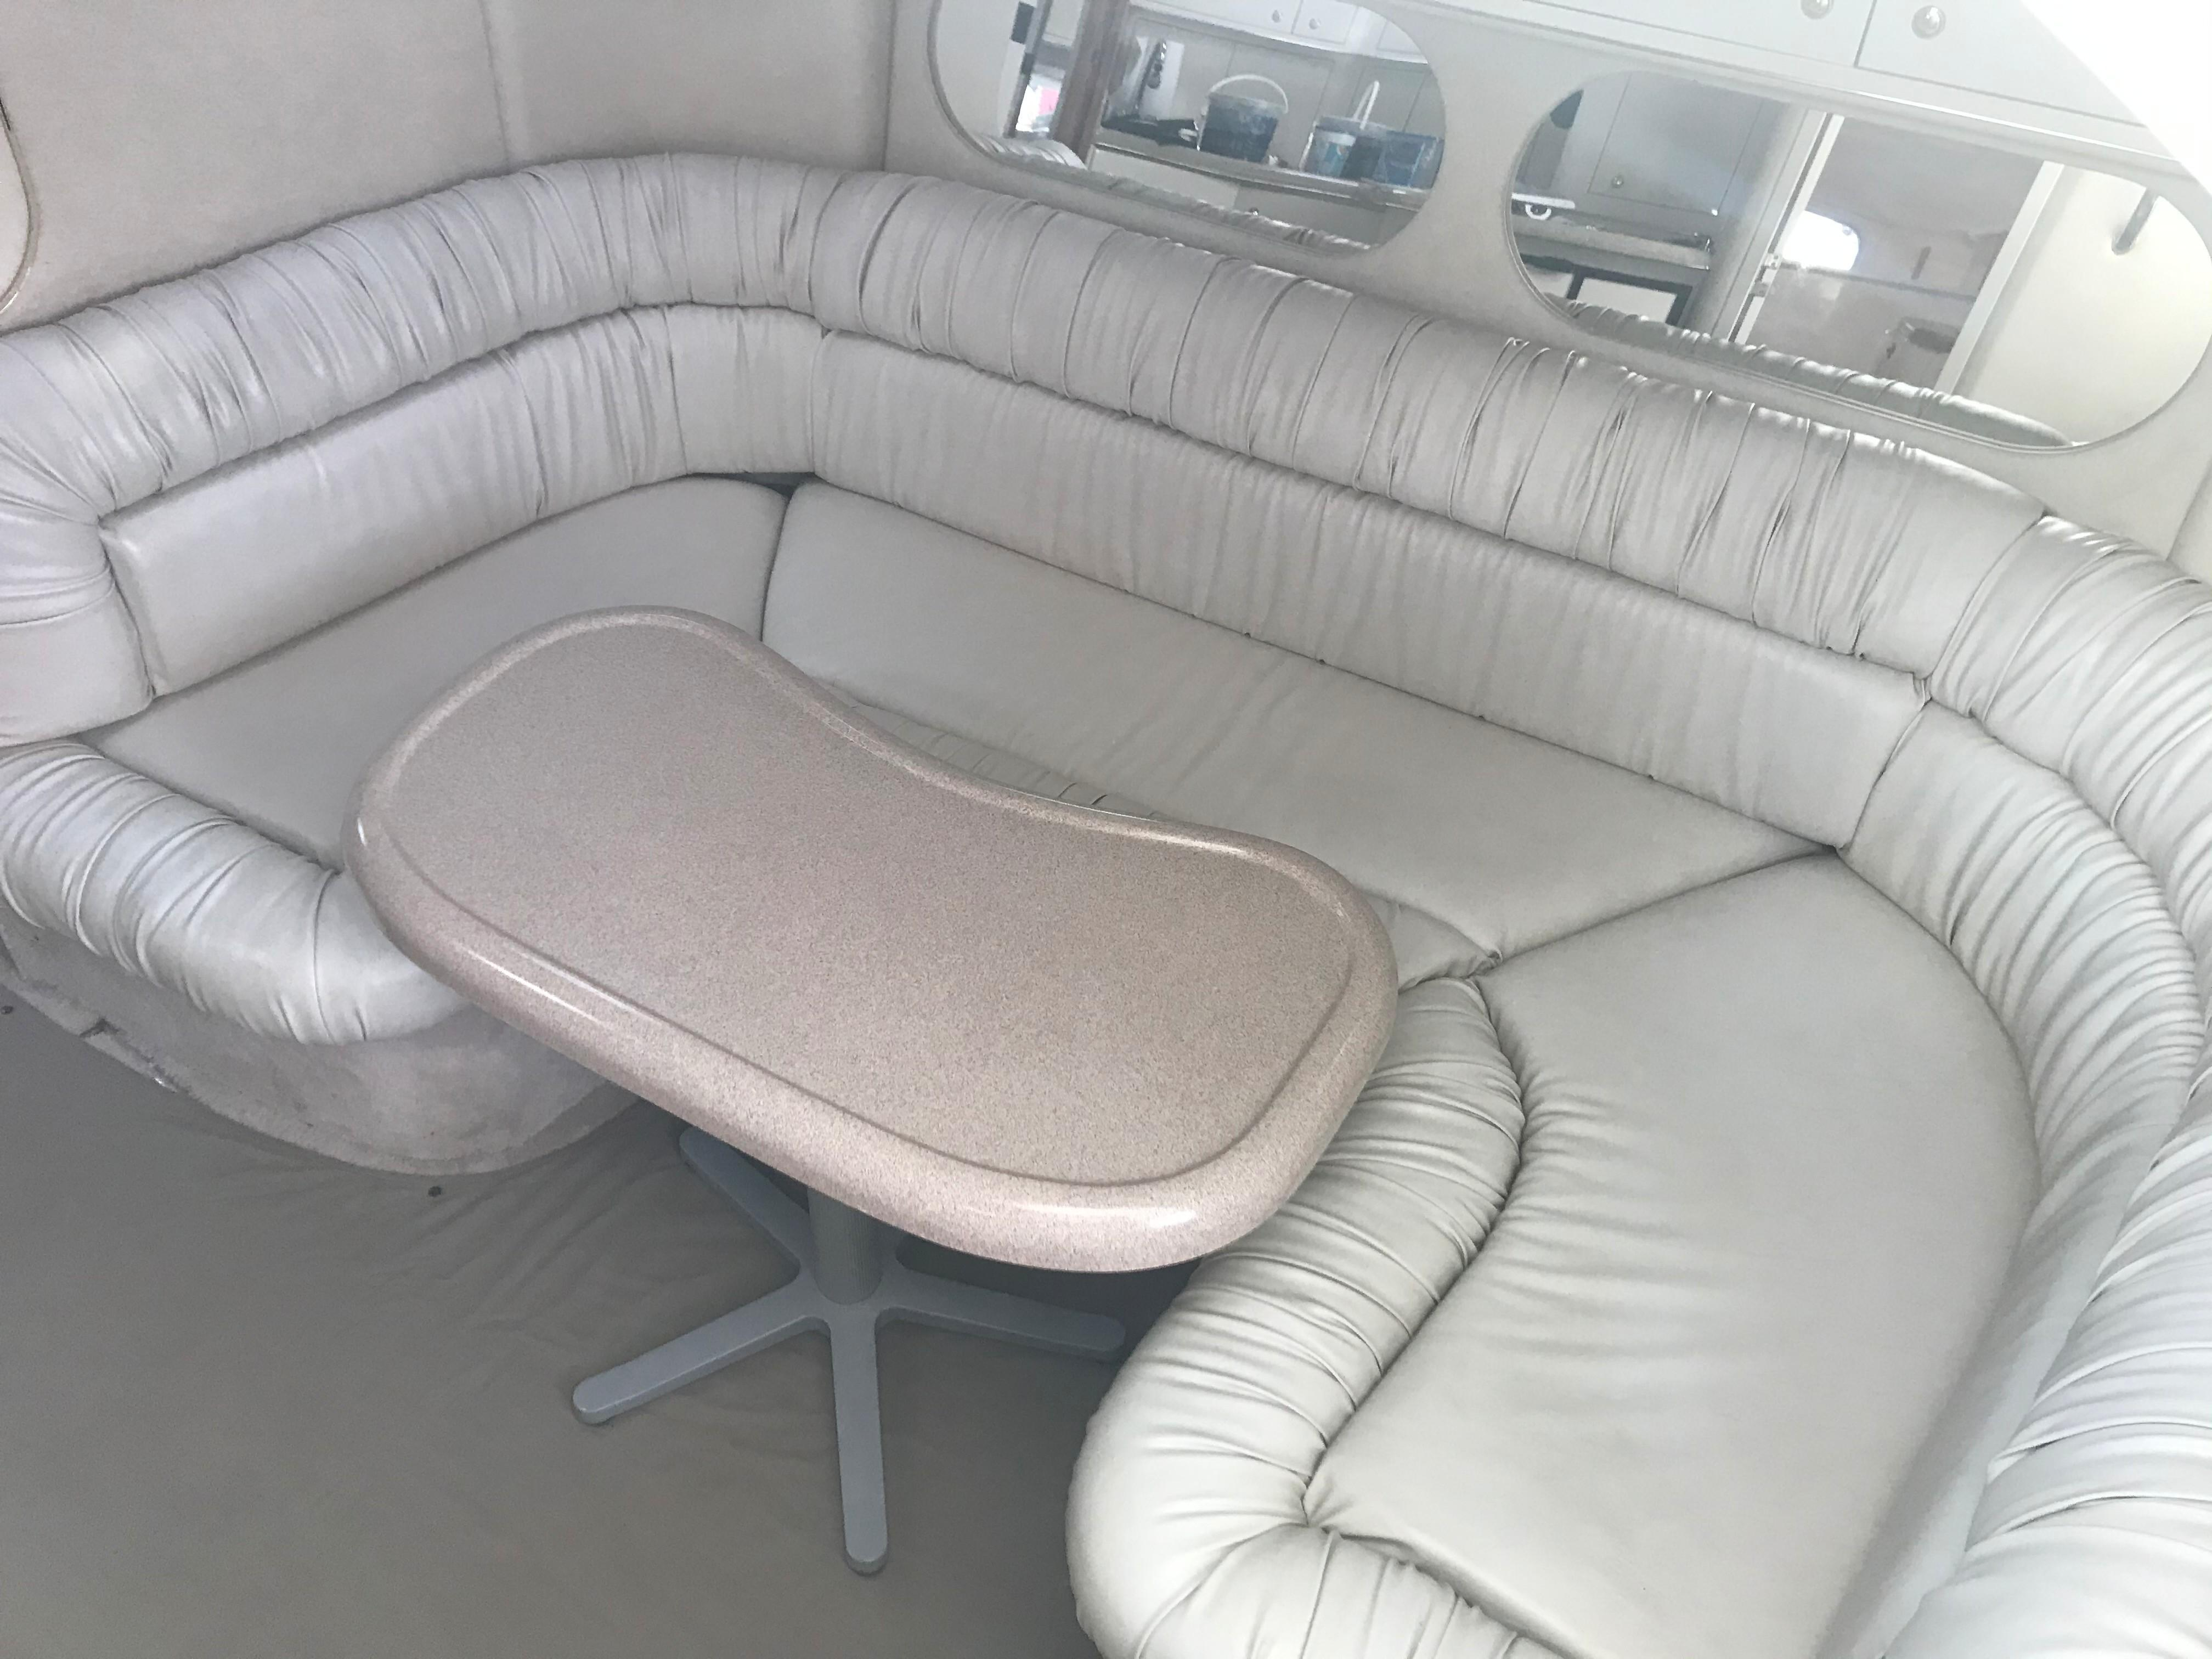 Sea Ray 370 Express Cruiser - U-shaped settee in Cabin to starboard